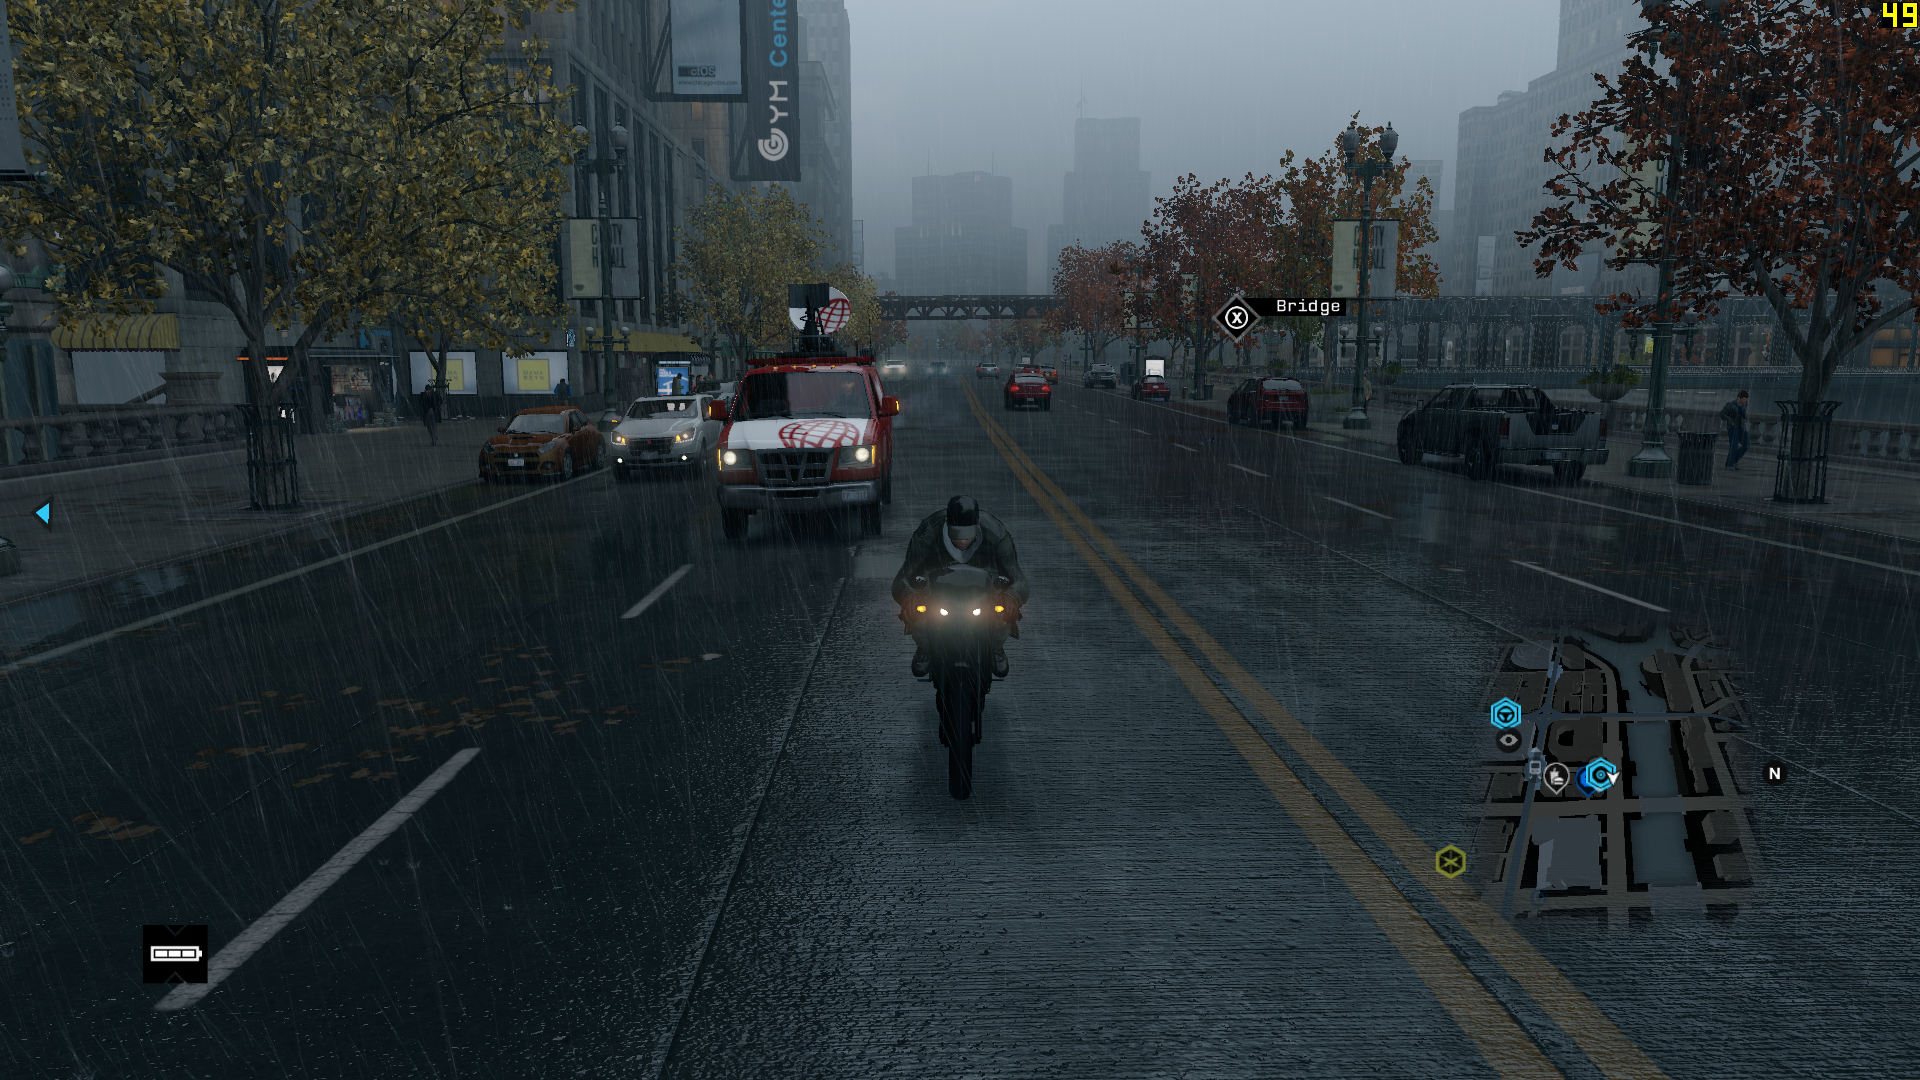 watch_dogs--011pvubt.png